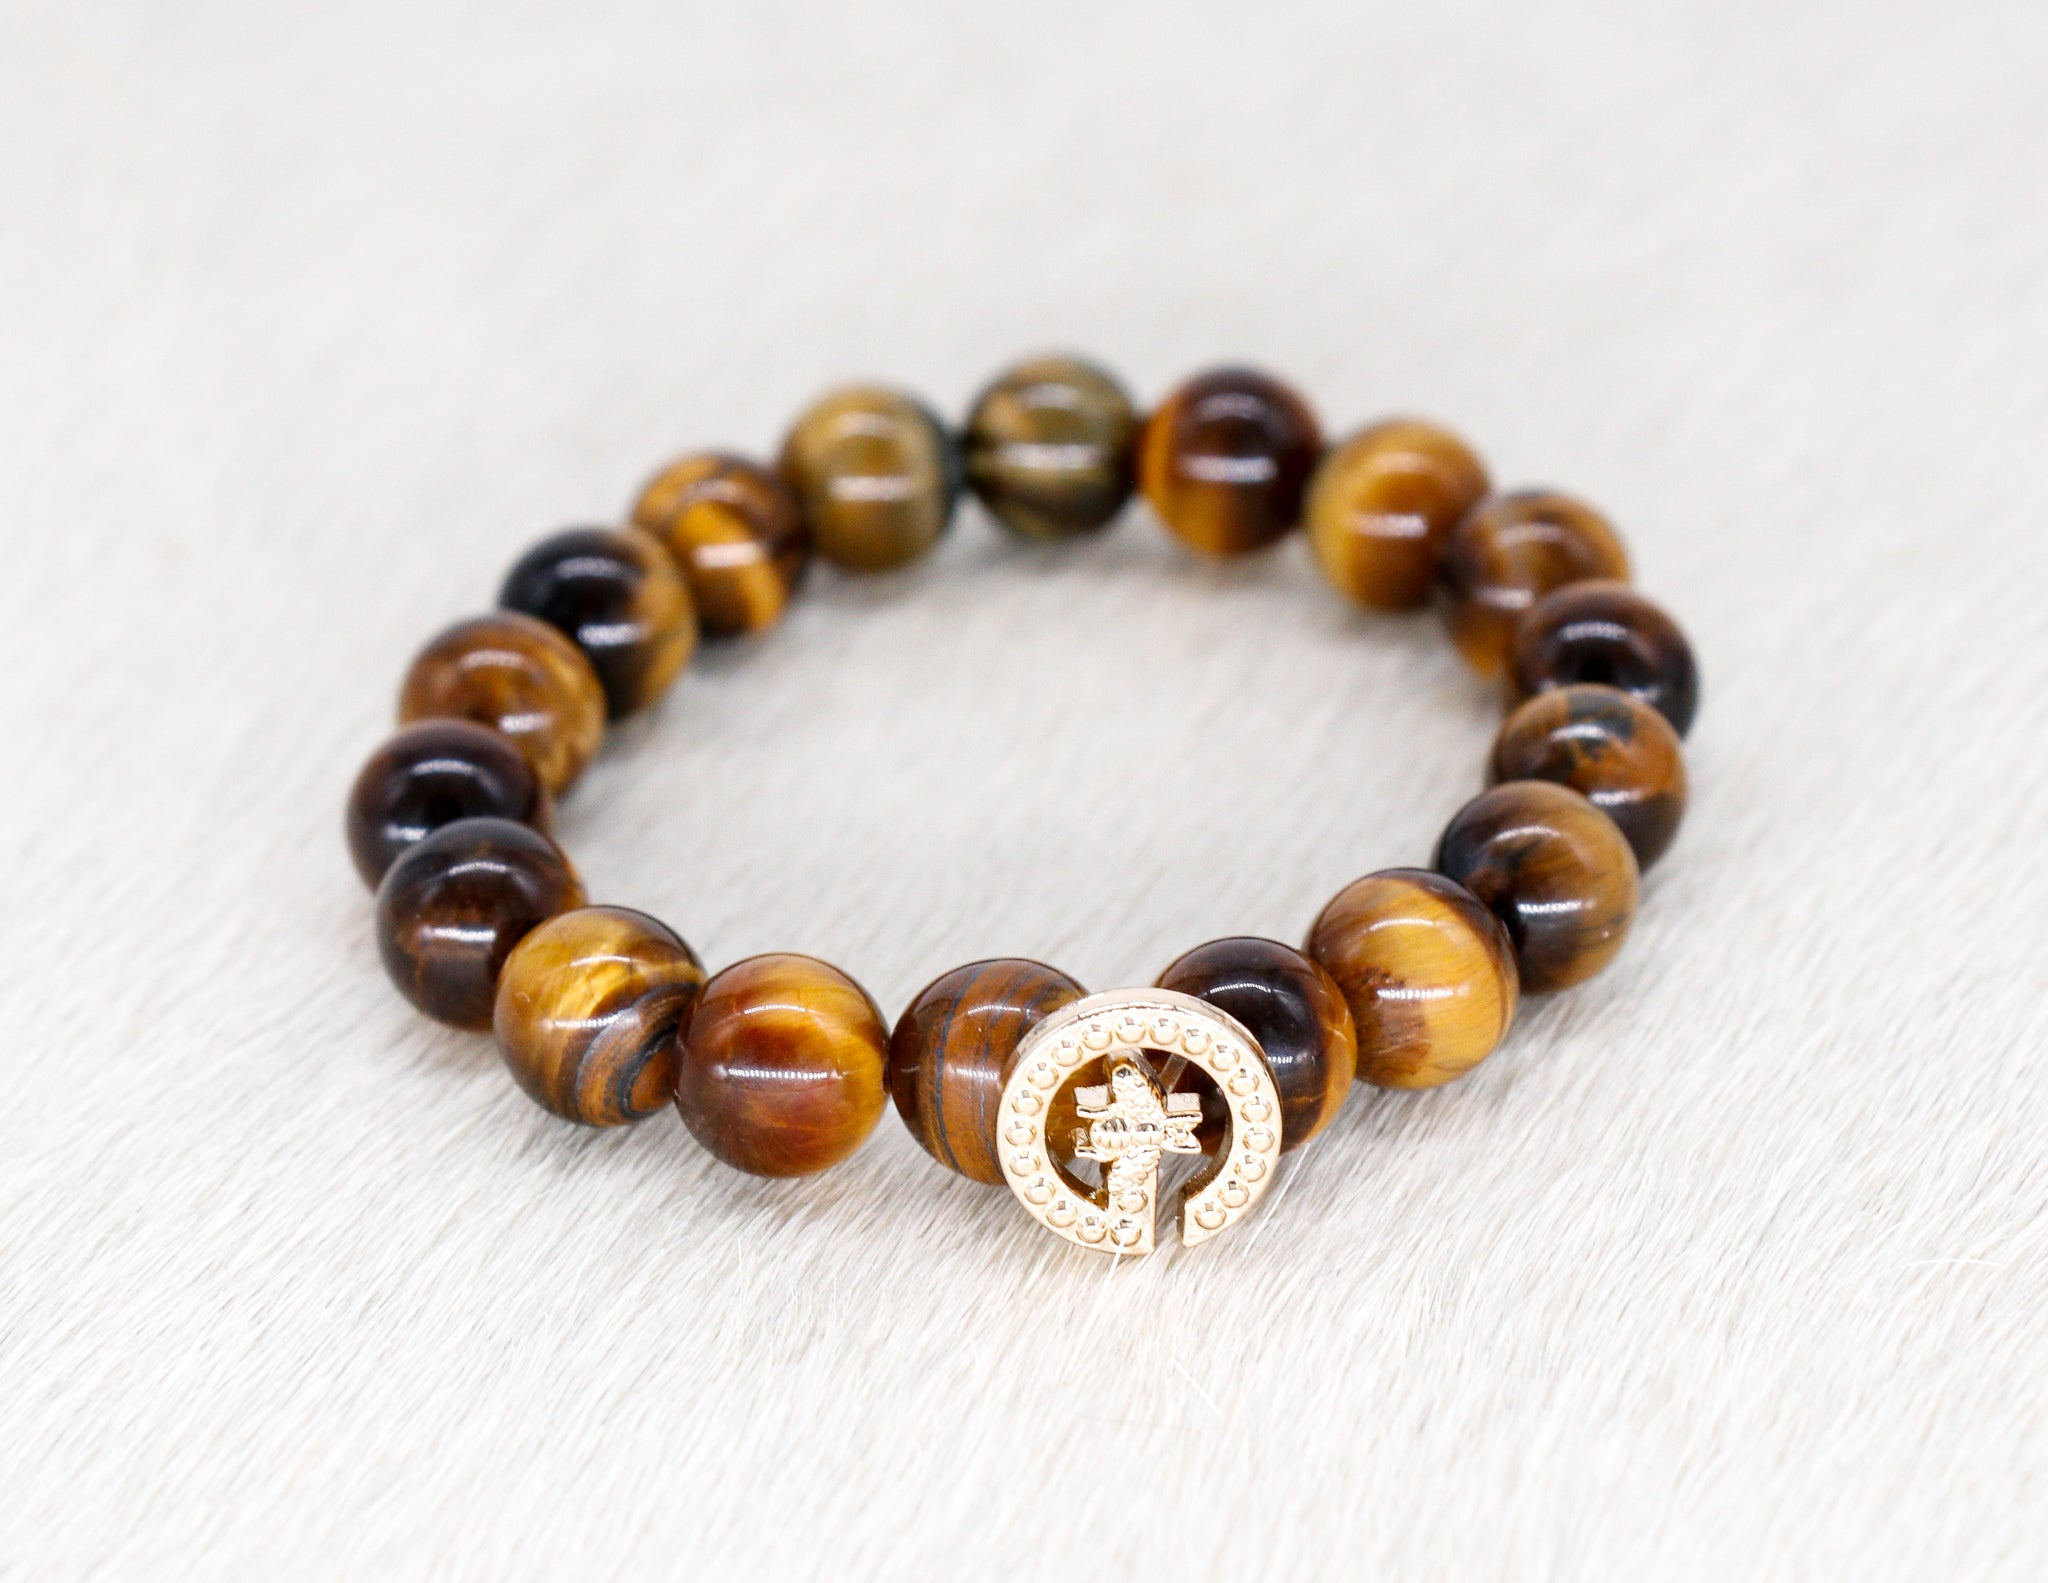 Tiger eye beads with a repurposed designer gold G with a bee button bracelet